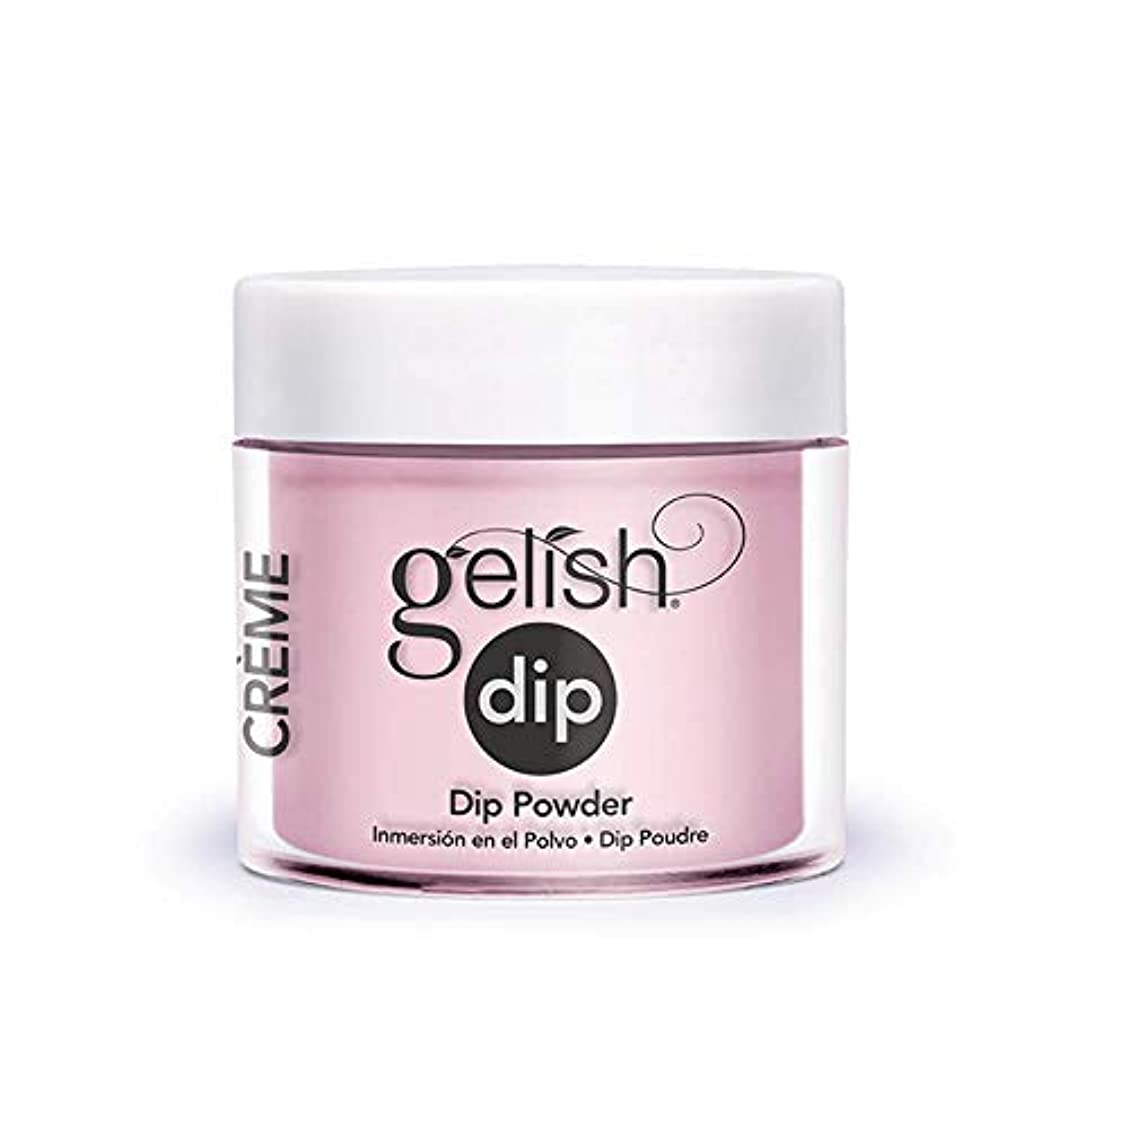 Harmony Gelish - Acrylic Dip Powder - You're So Sweet You're Giving Me a Toothache - 23g / 0.8oz